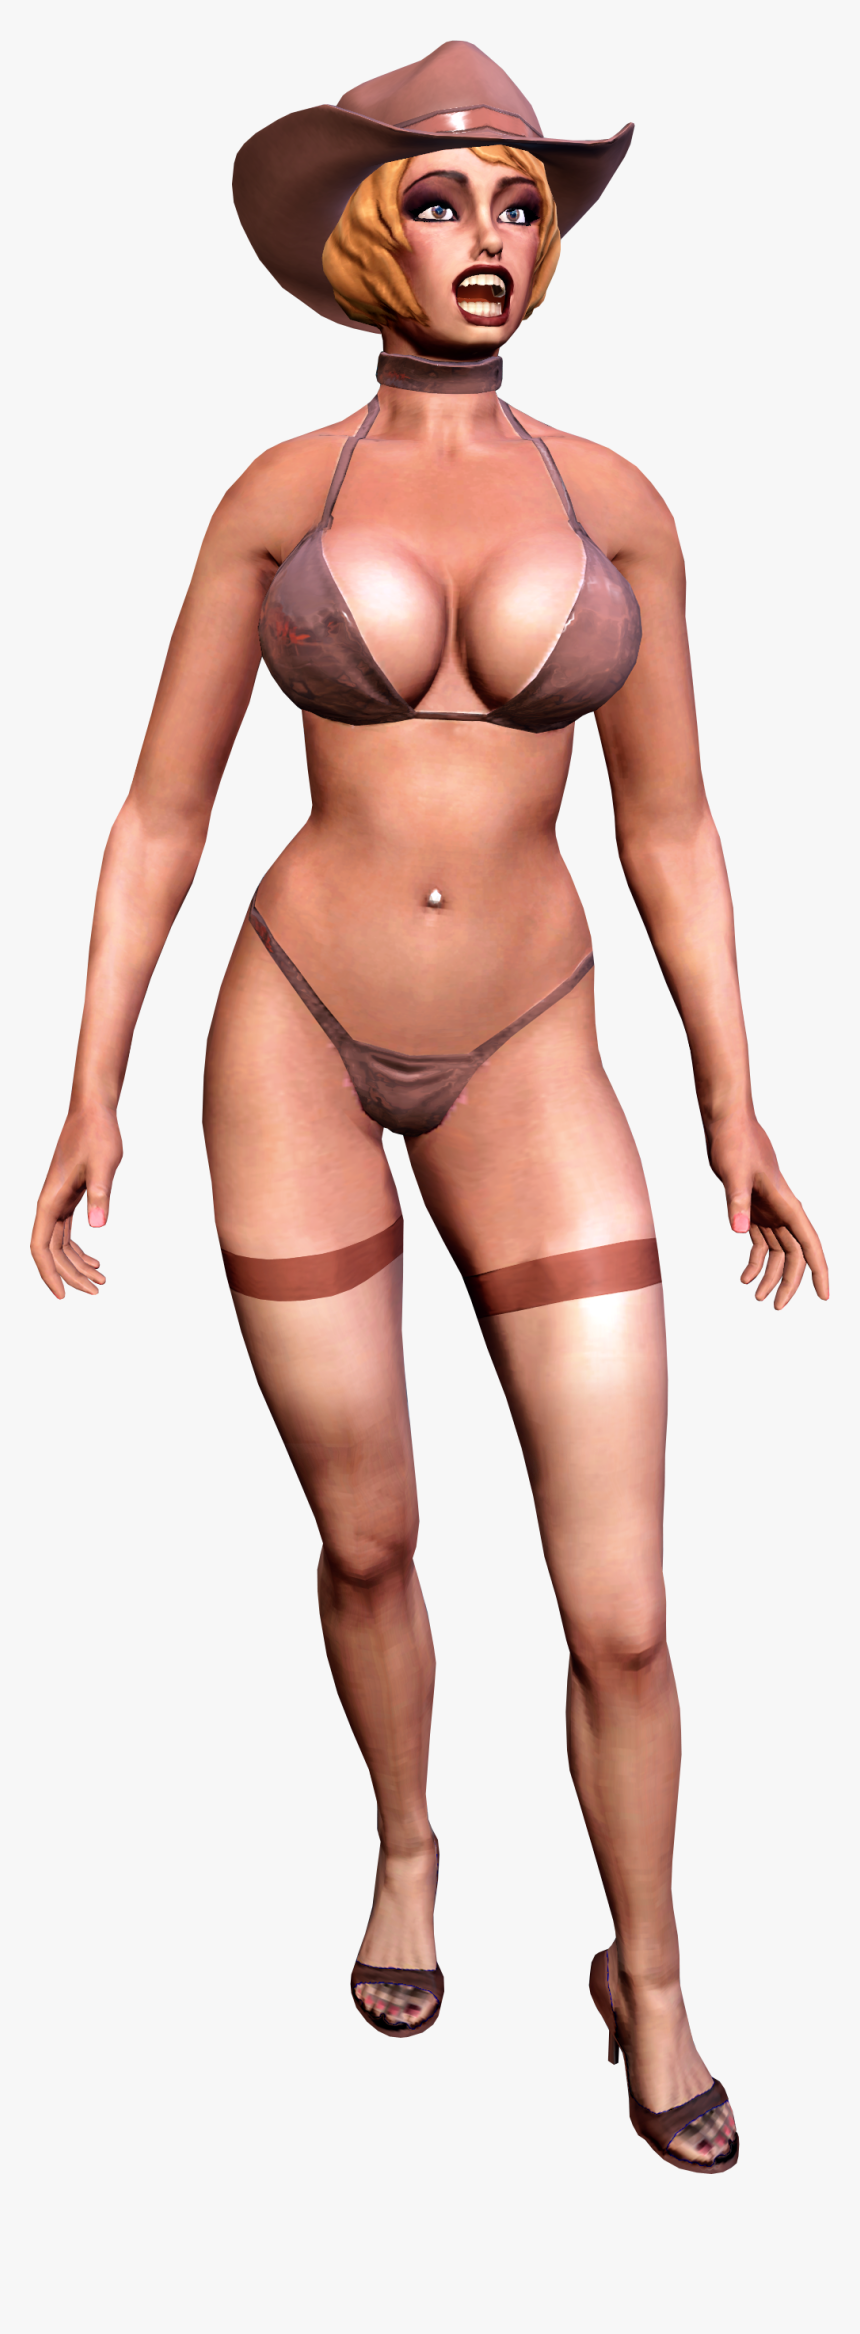 Saints Row Wiki - Saints Row The Third Strippers, HD Png Download, Free Download